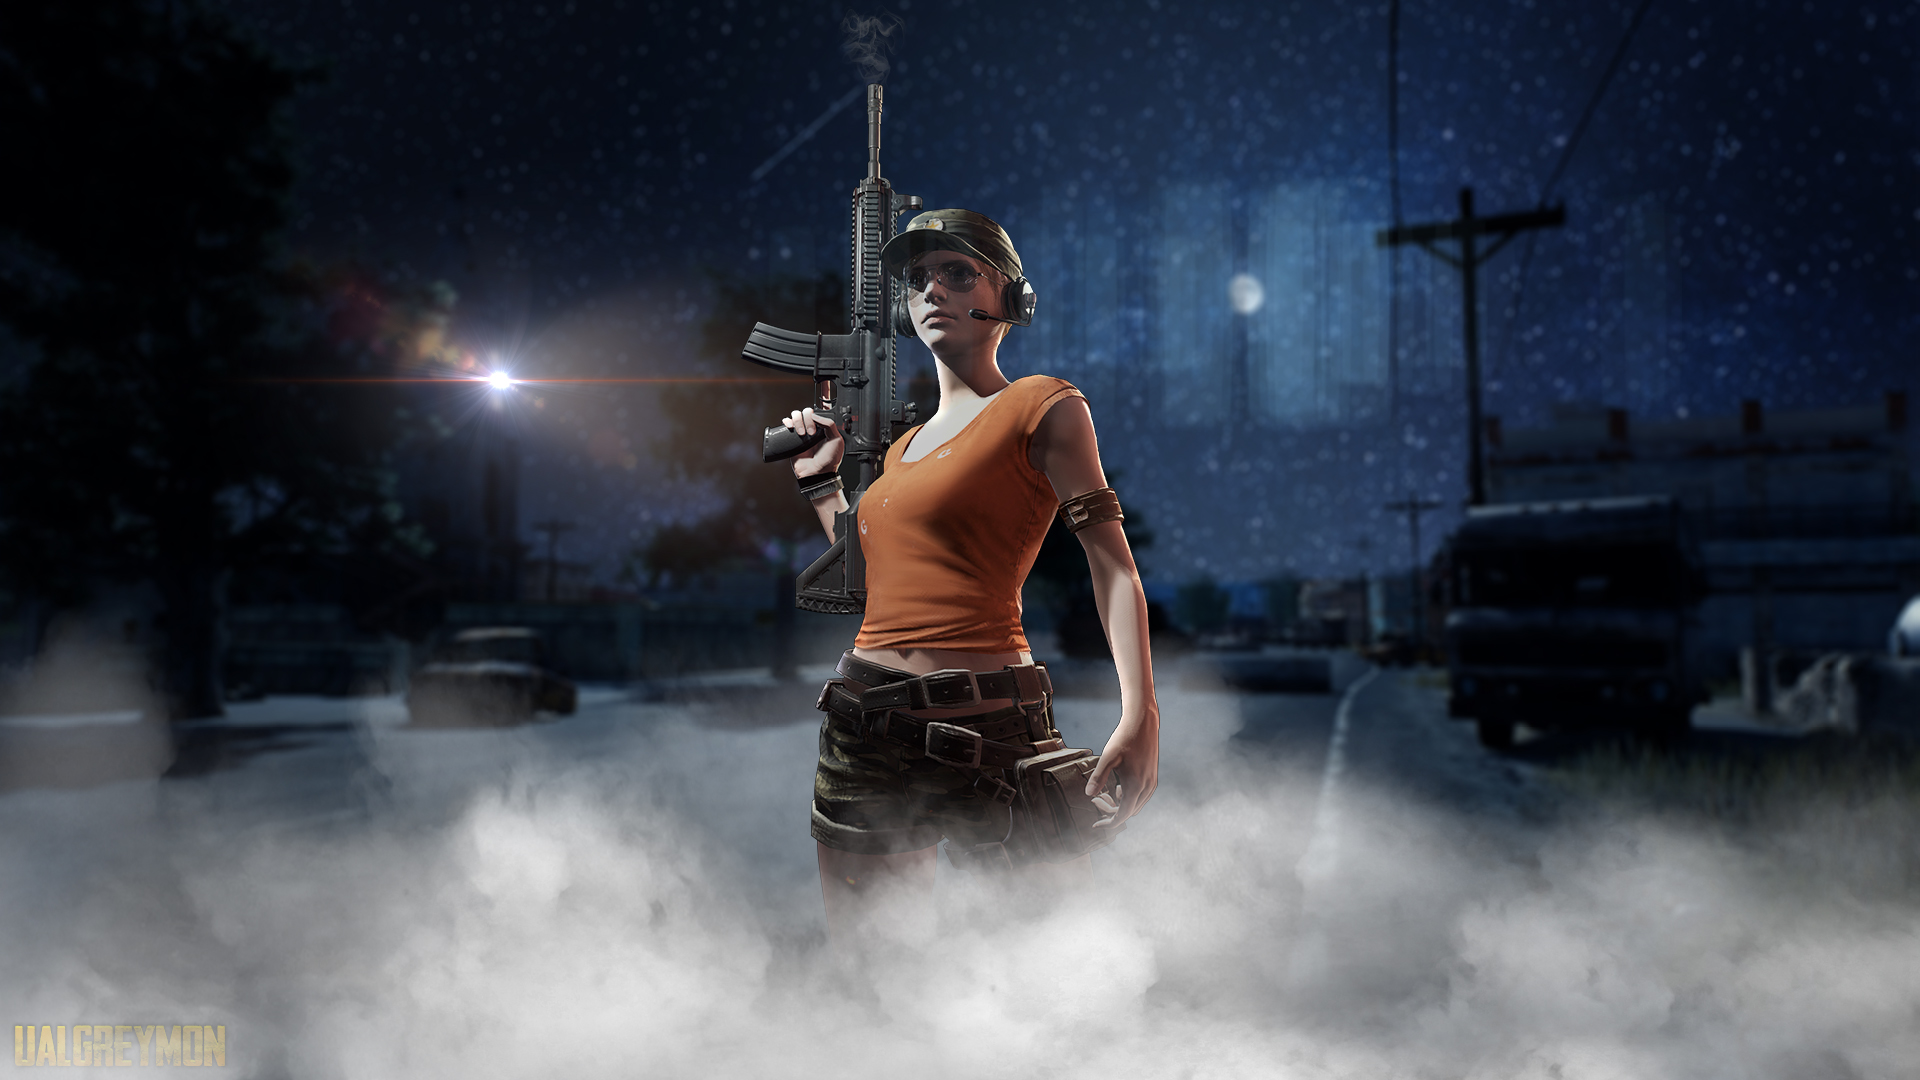 Pubg Lite Wallpaper Hd: Pubg Night, HD Games, 4k Wallpapers, Images, Backgrounds